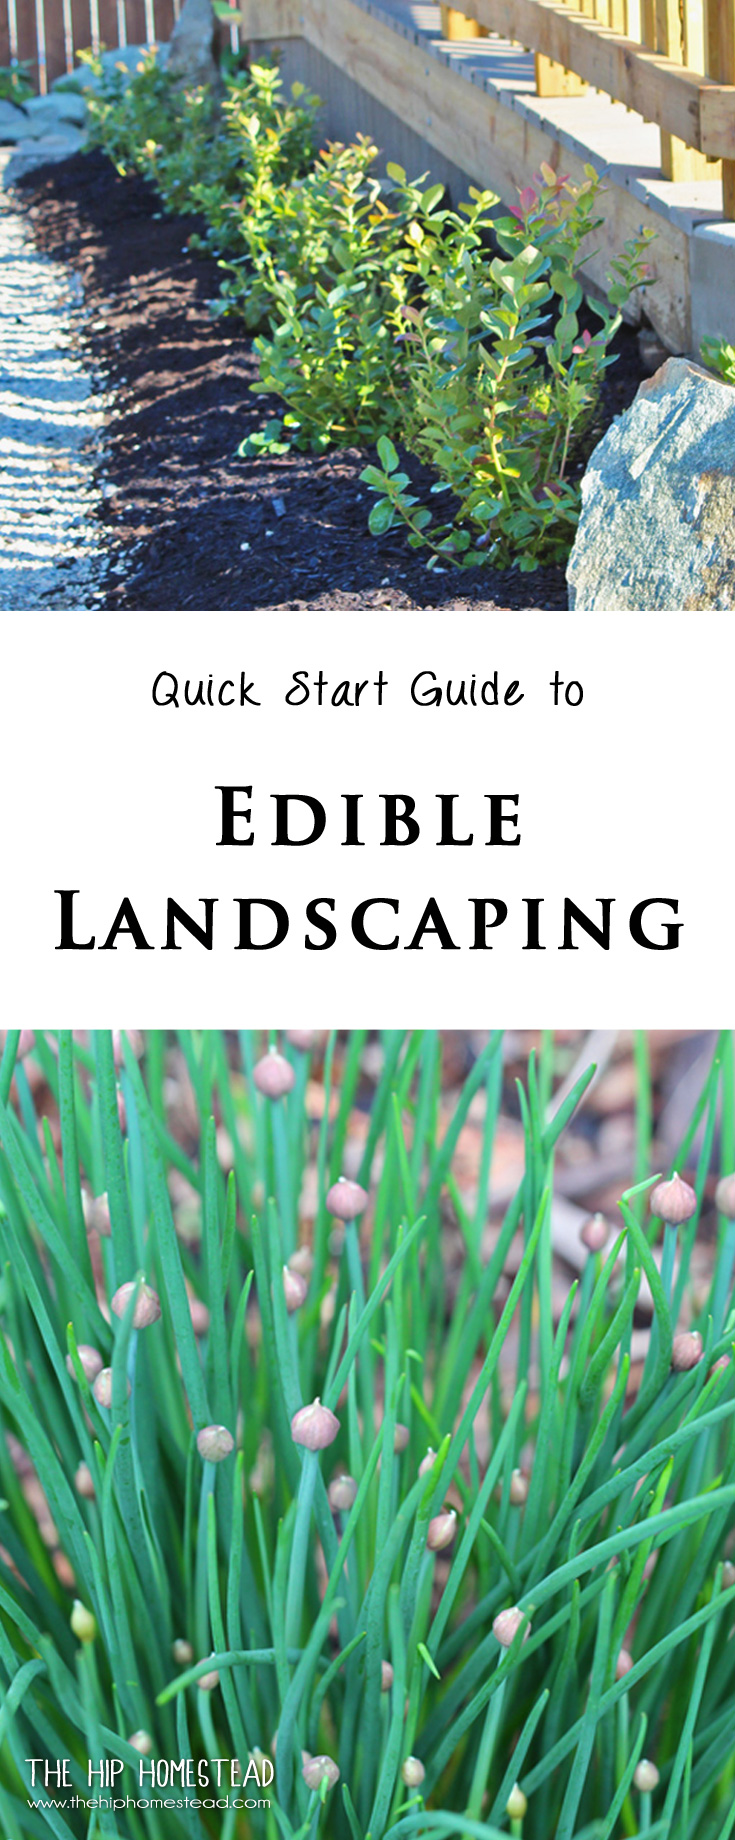 Quick Guide to Edible Landscaping - The Hip Homestead